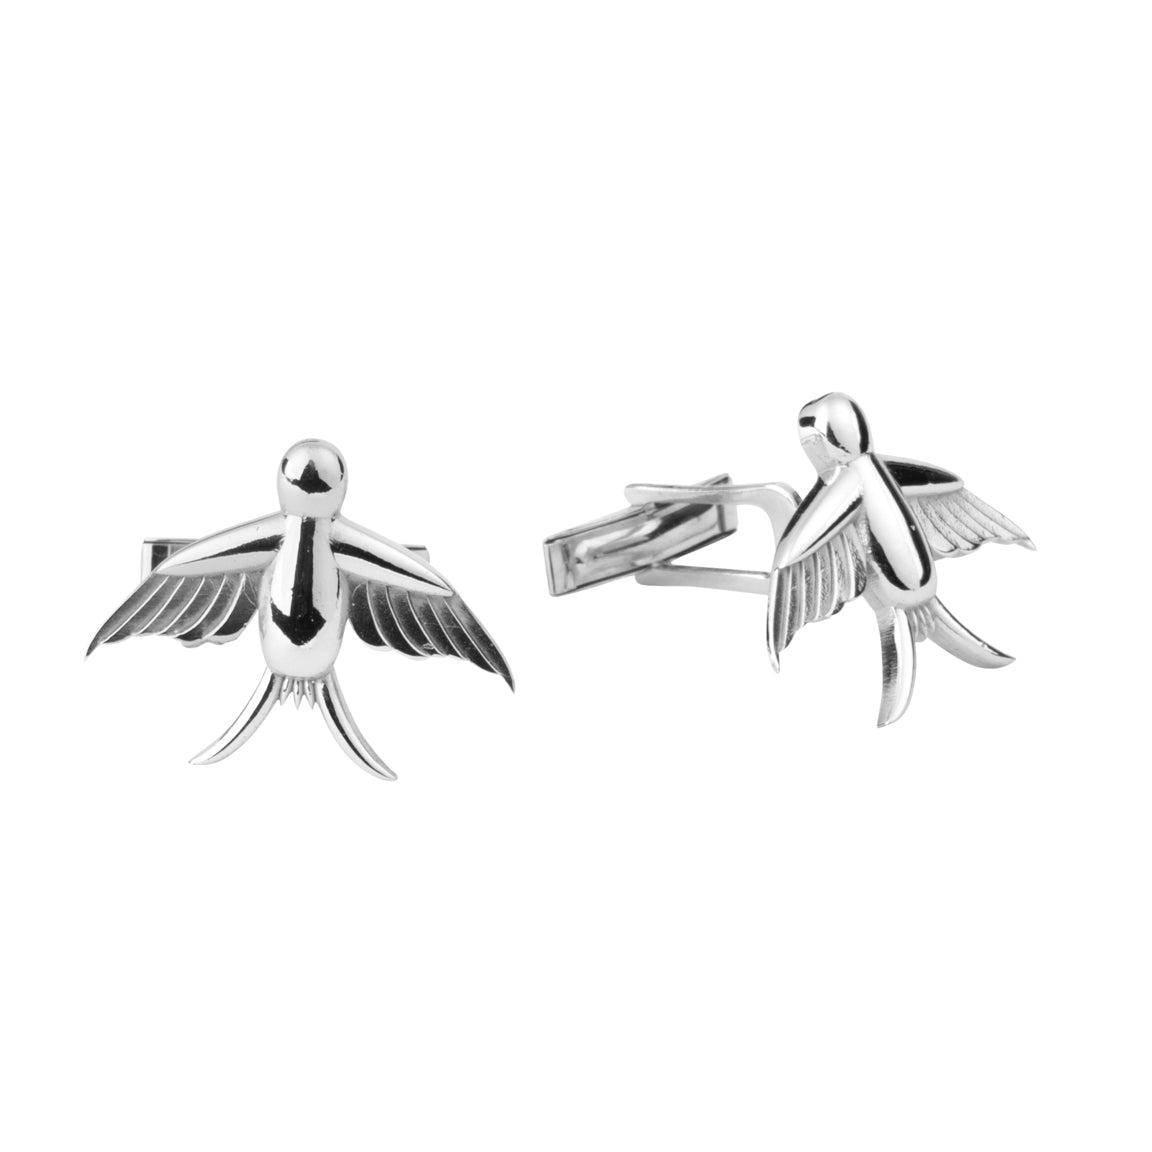 Creature of Habit Cufflinks